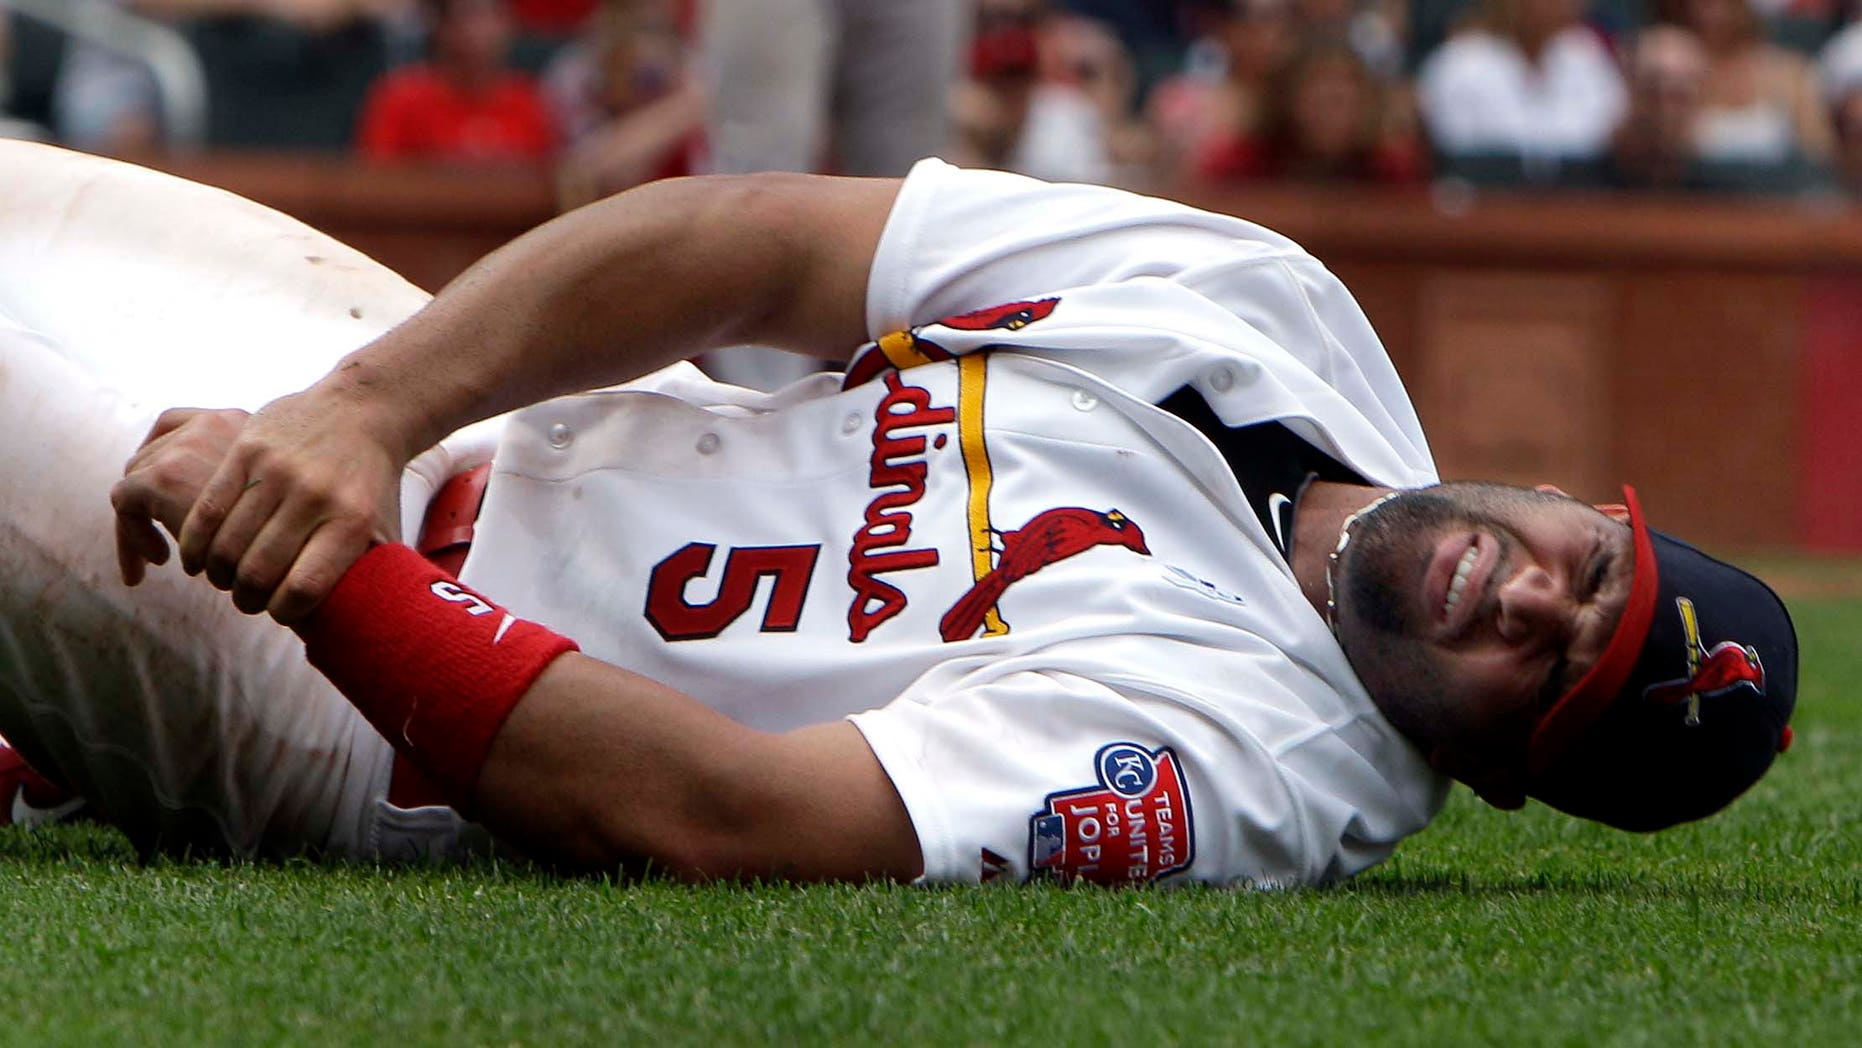 June 19: St. Louis Cardinals first baseman Albert Pujols injured his left wrist in the sixth inning in a game against the Kansas City Royals. (AP Photo/Jeff Roberson)